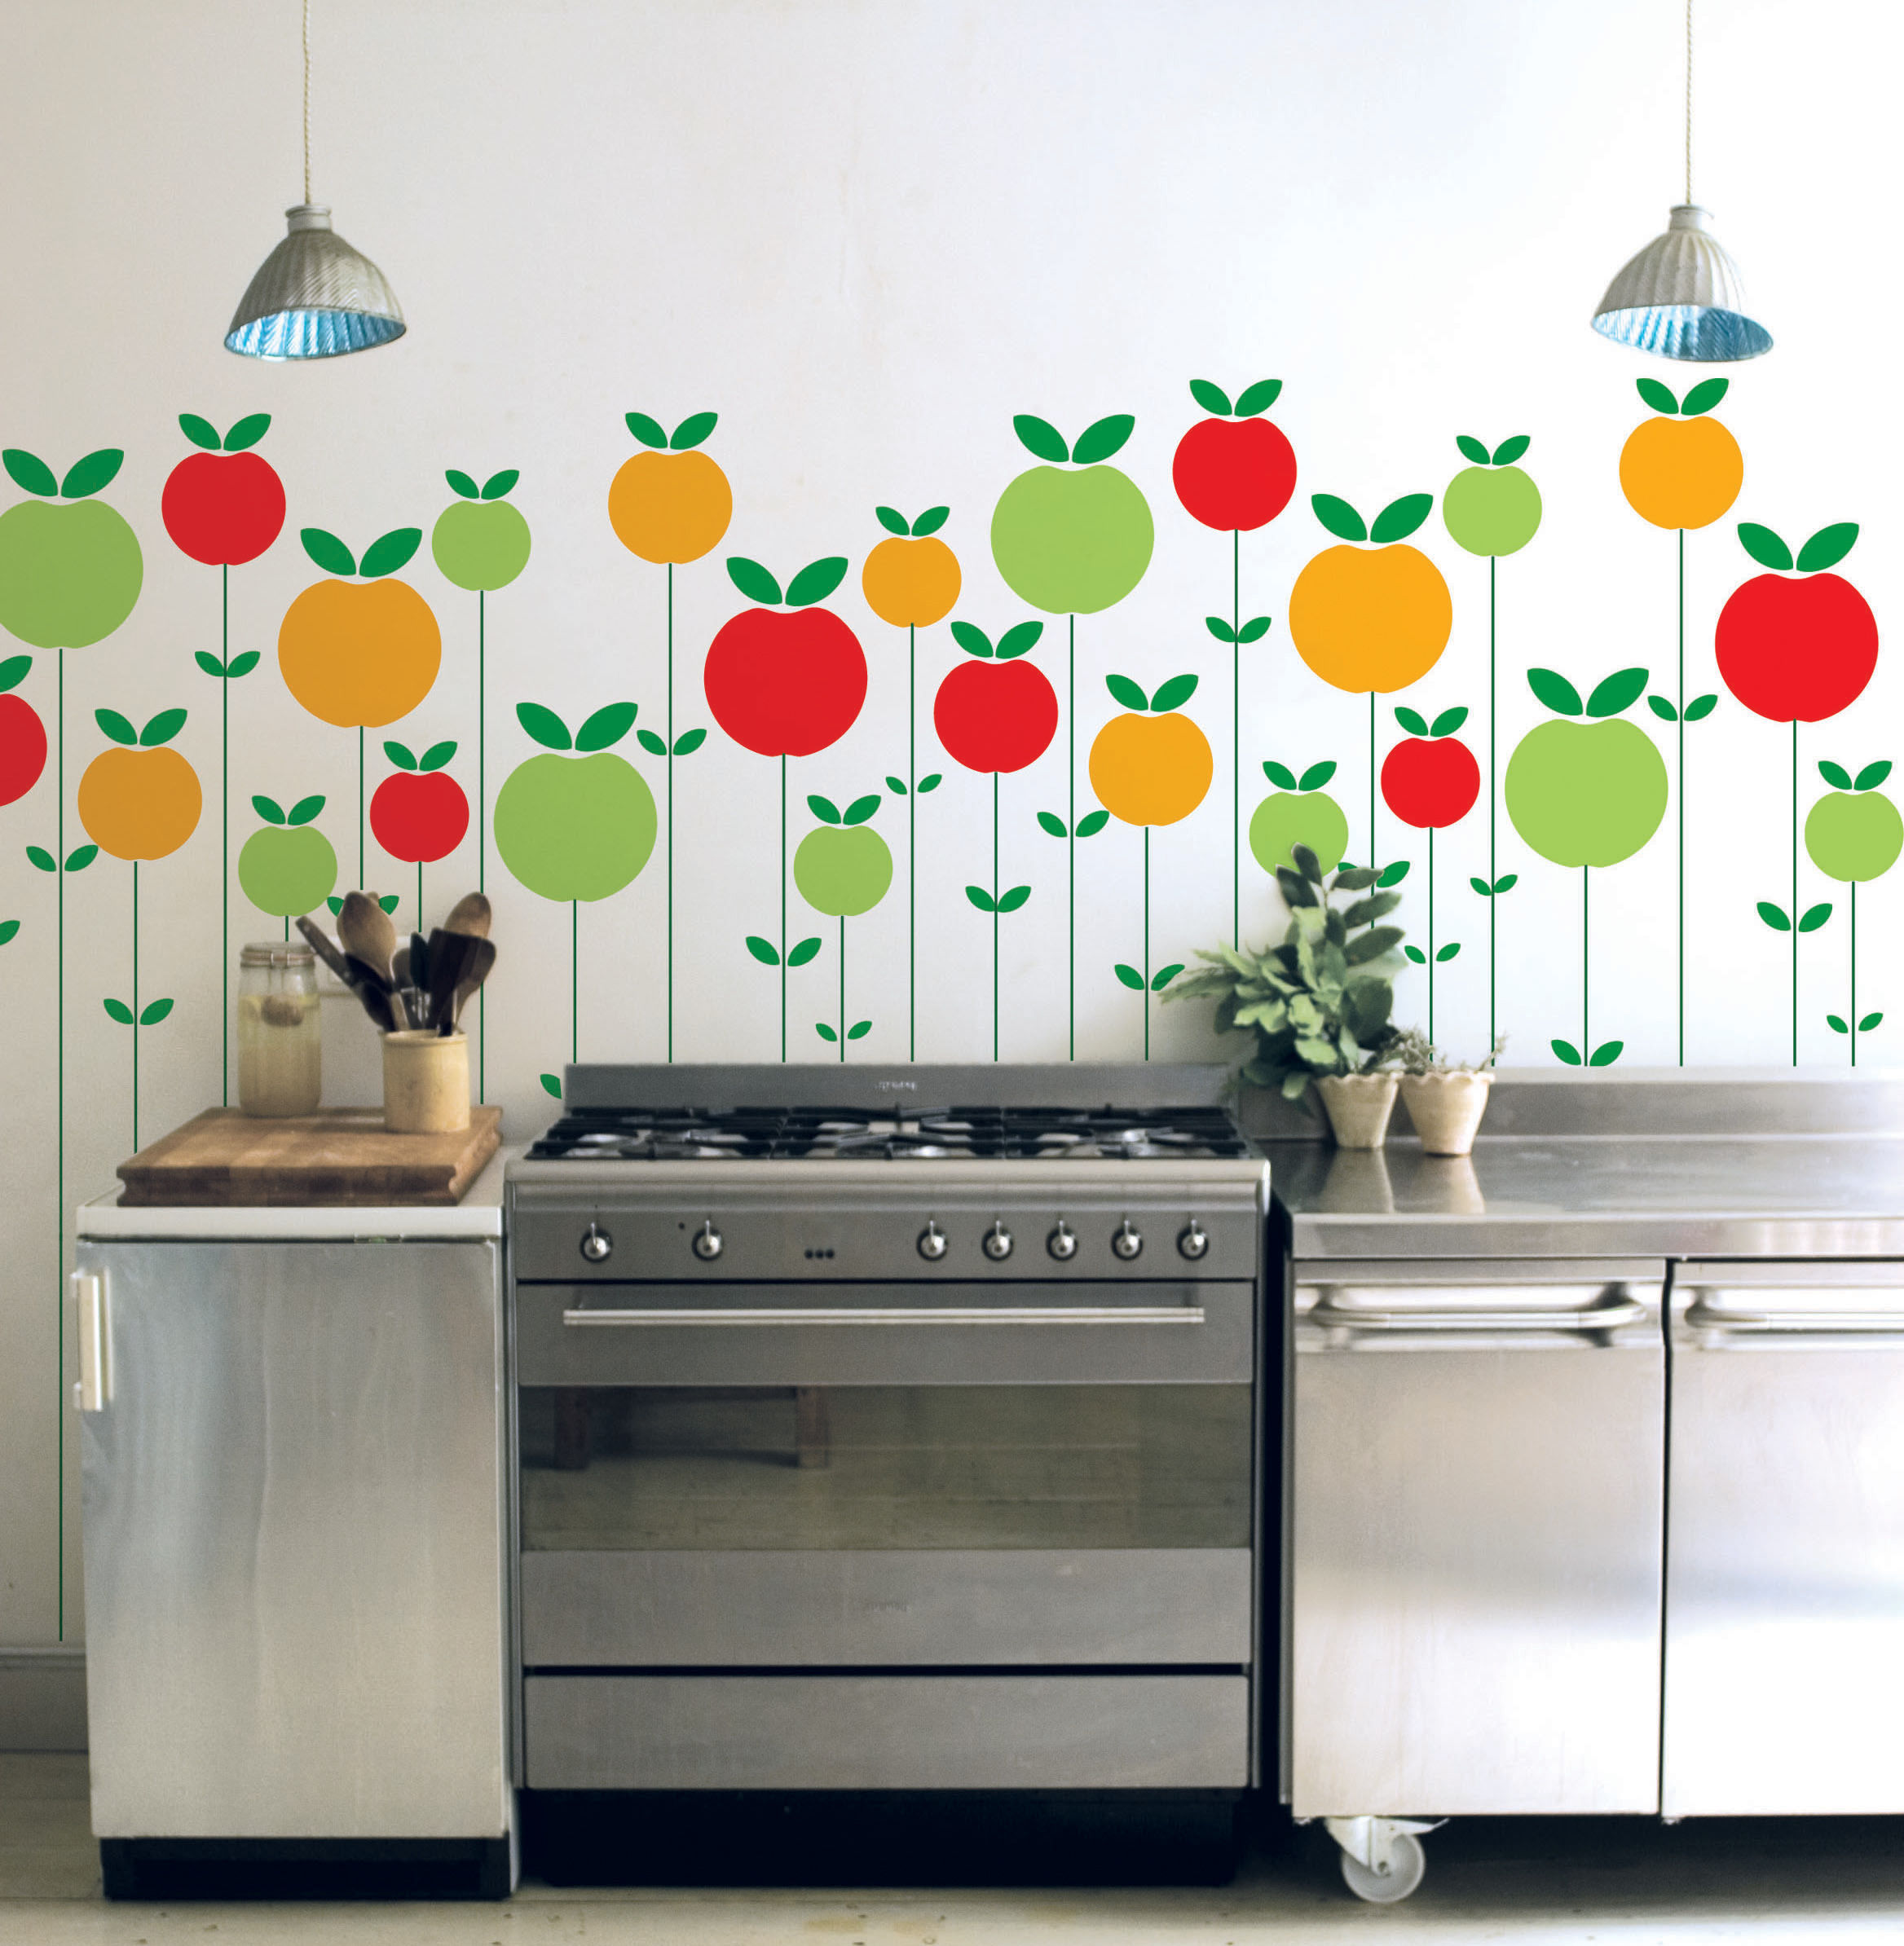 Sticker pom rouge jaune vert domestic made in design for Decoracion para paredes de cocina